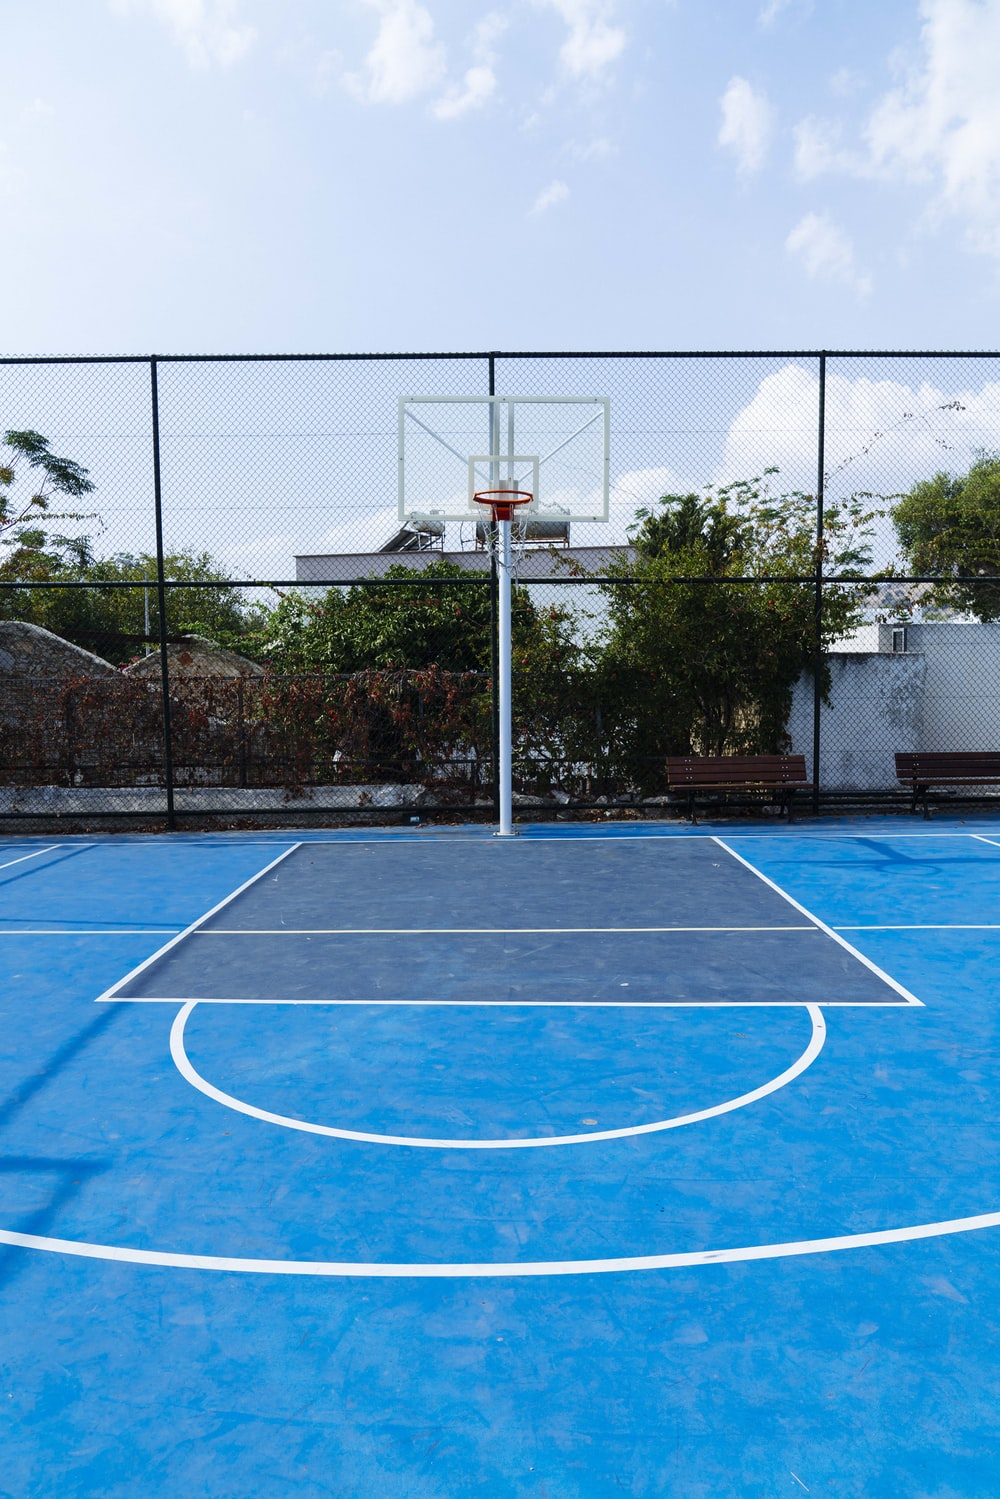 portable basketball system during daytime